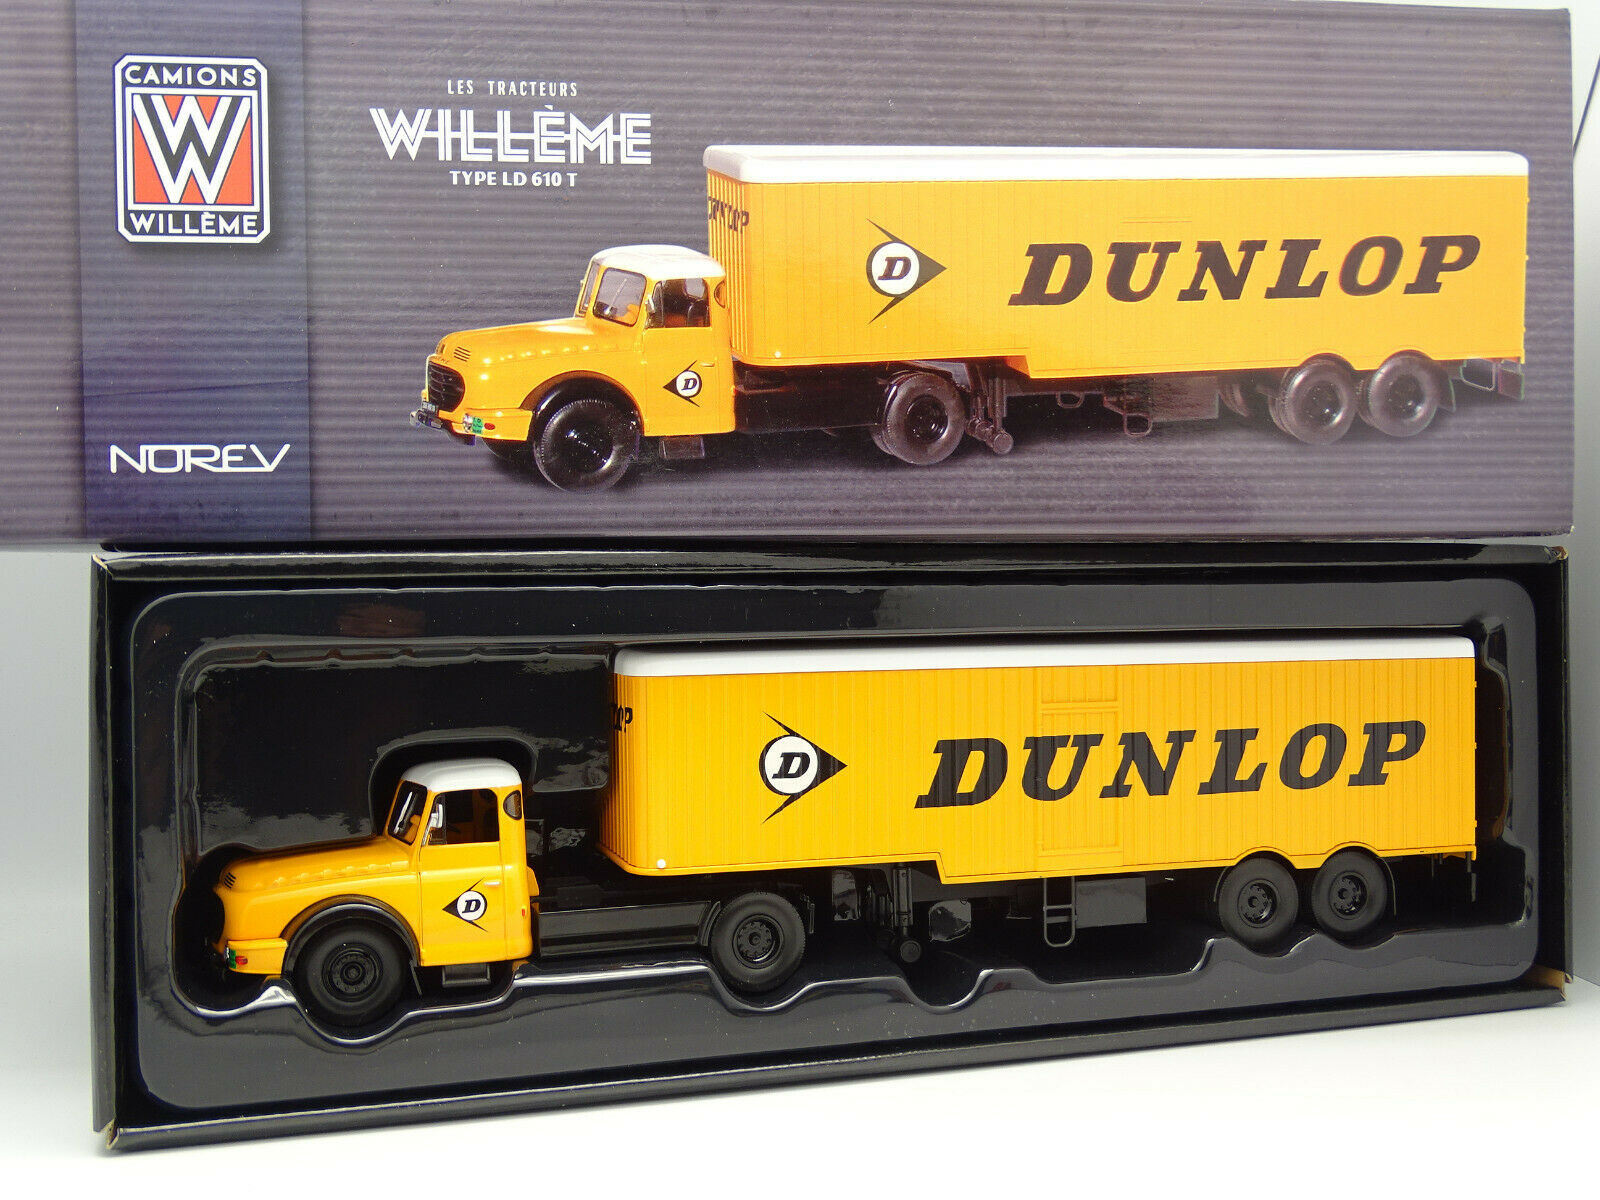 Norev 1 43 - willeme ld 610 semi trailer Dunlop